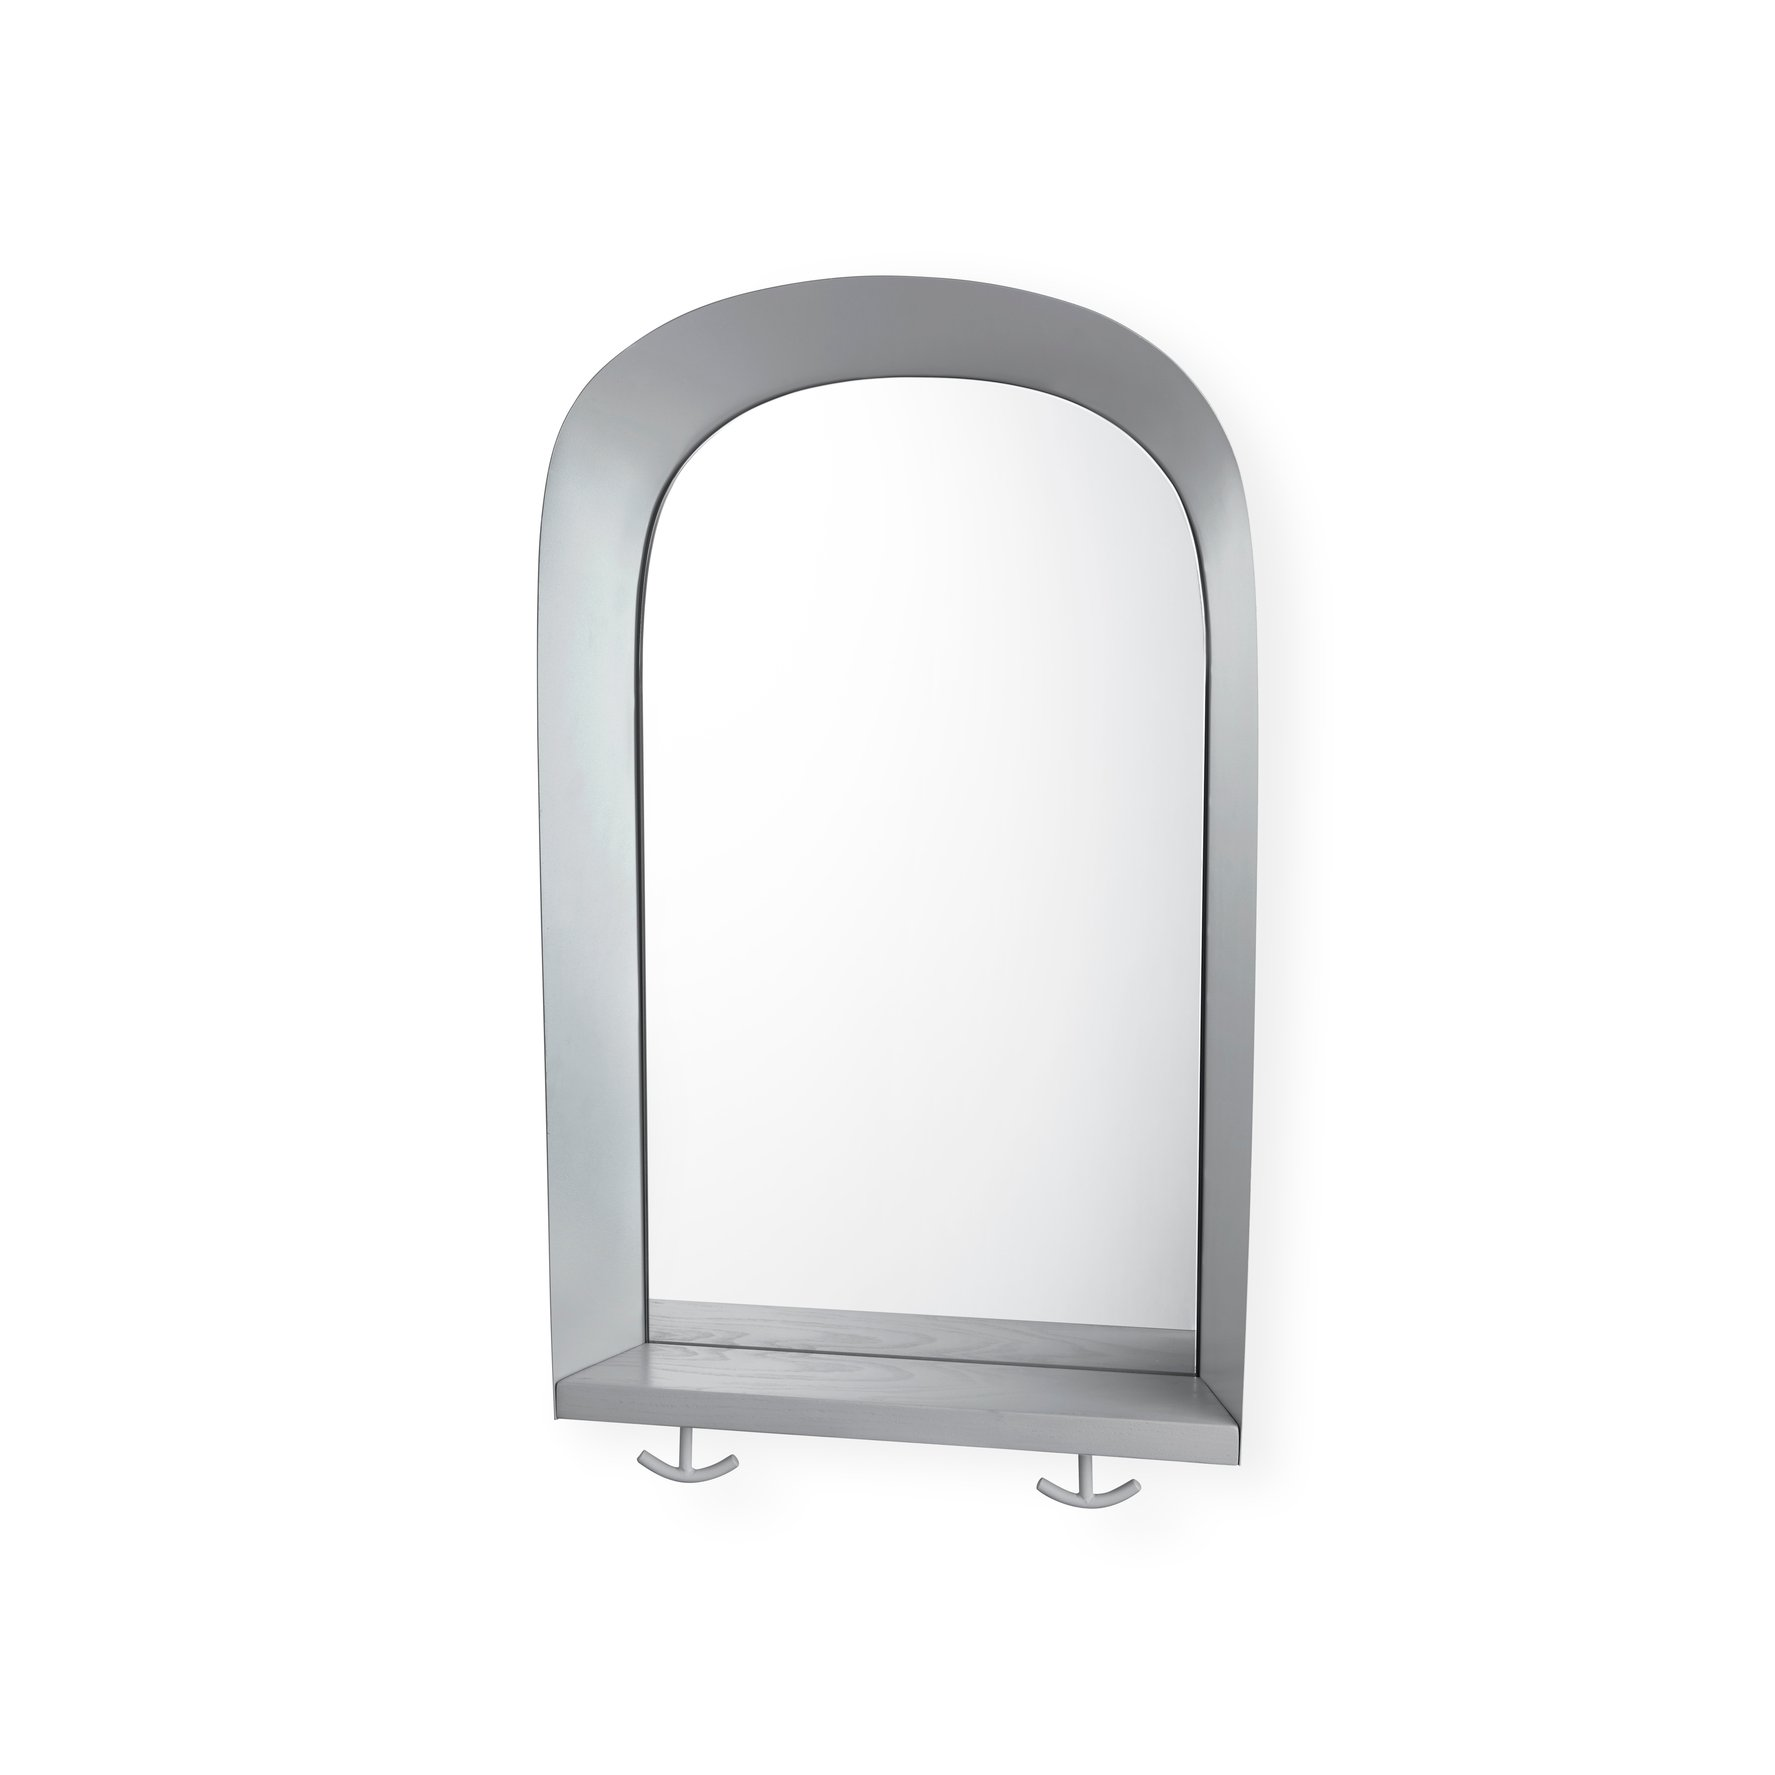 Nofred - Portal Mirror - Grey